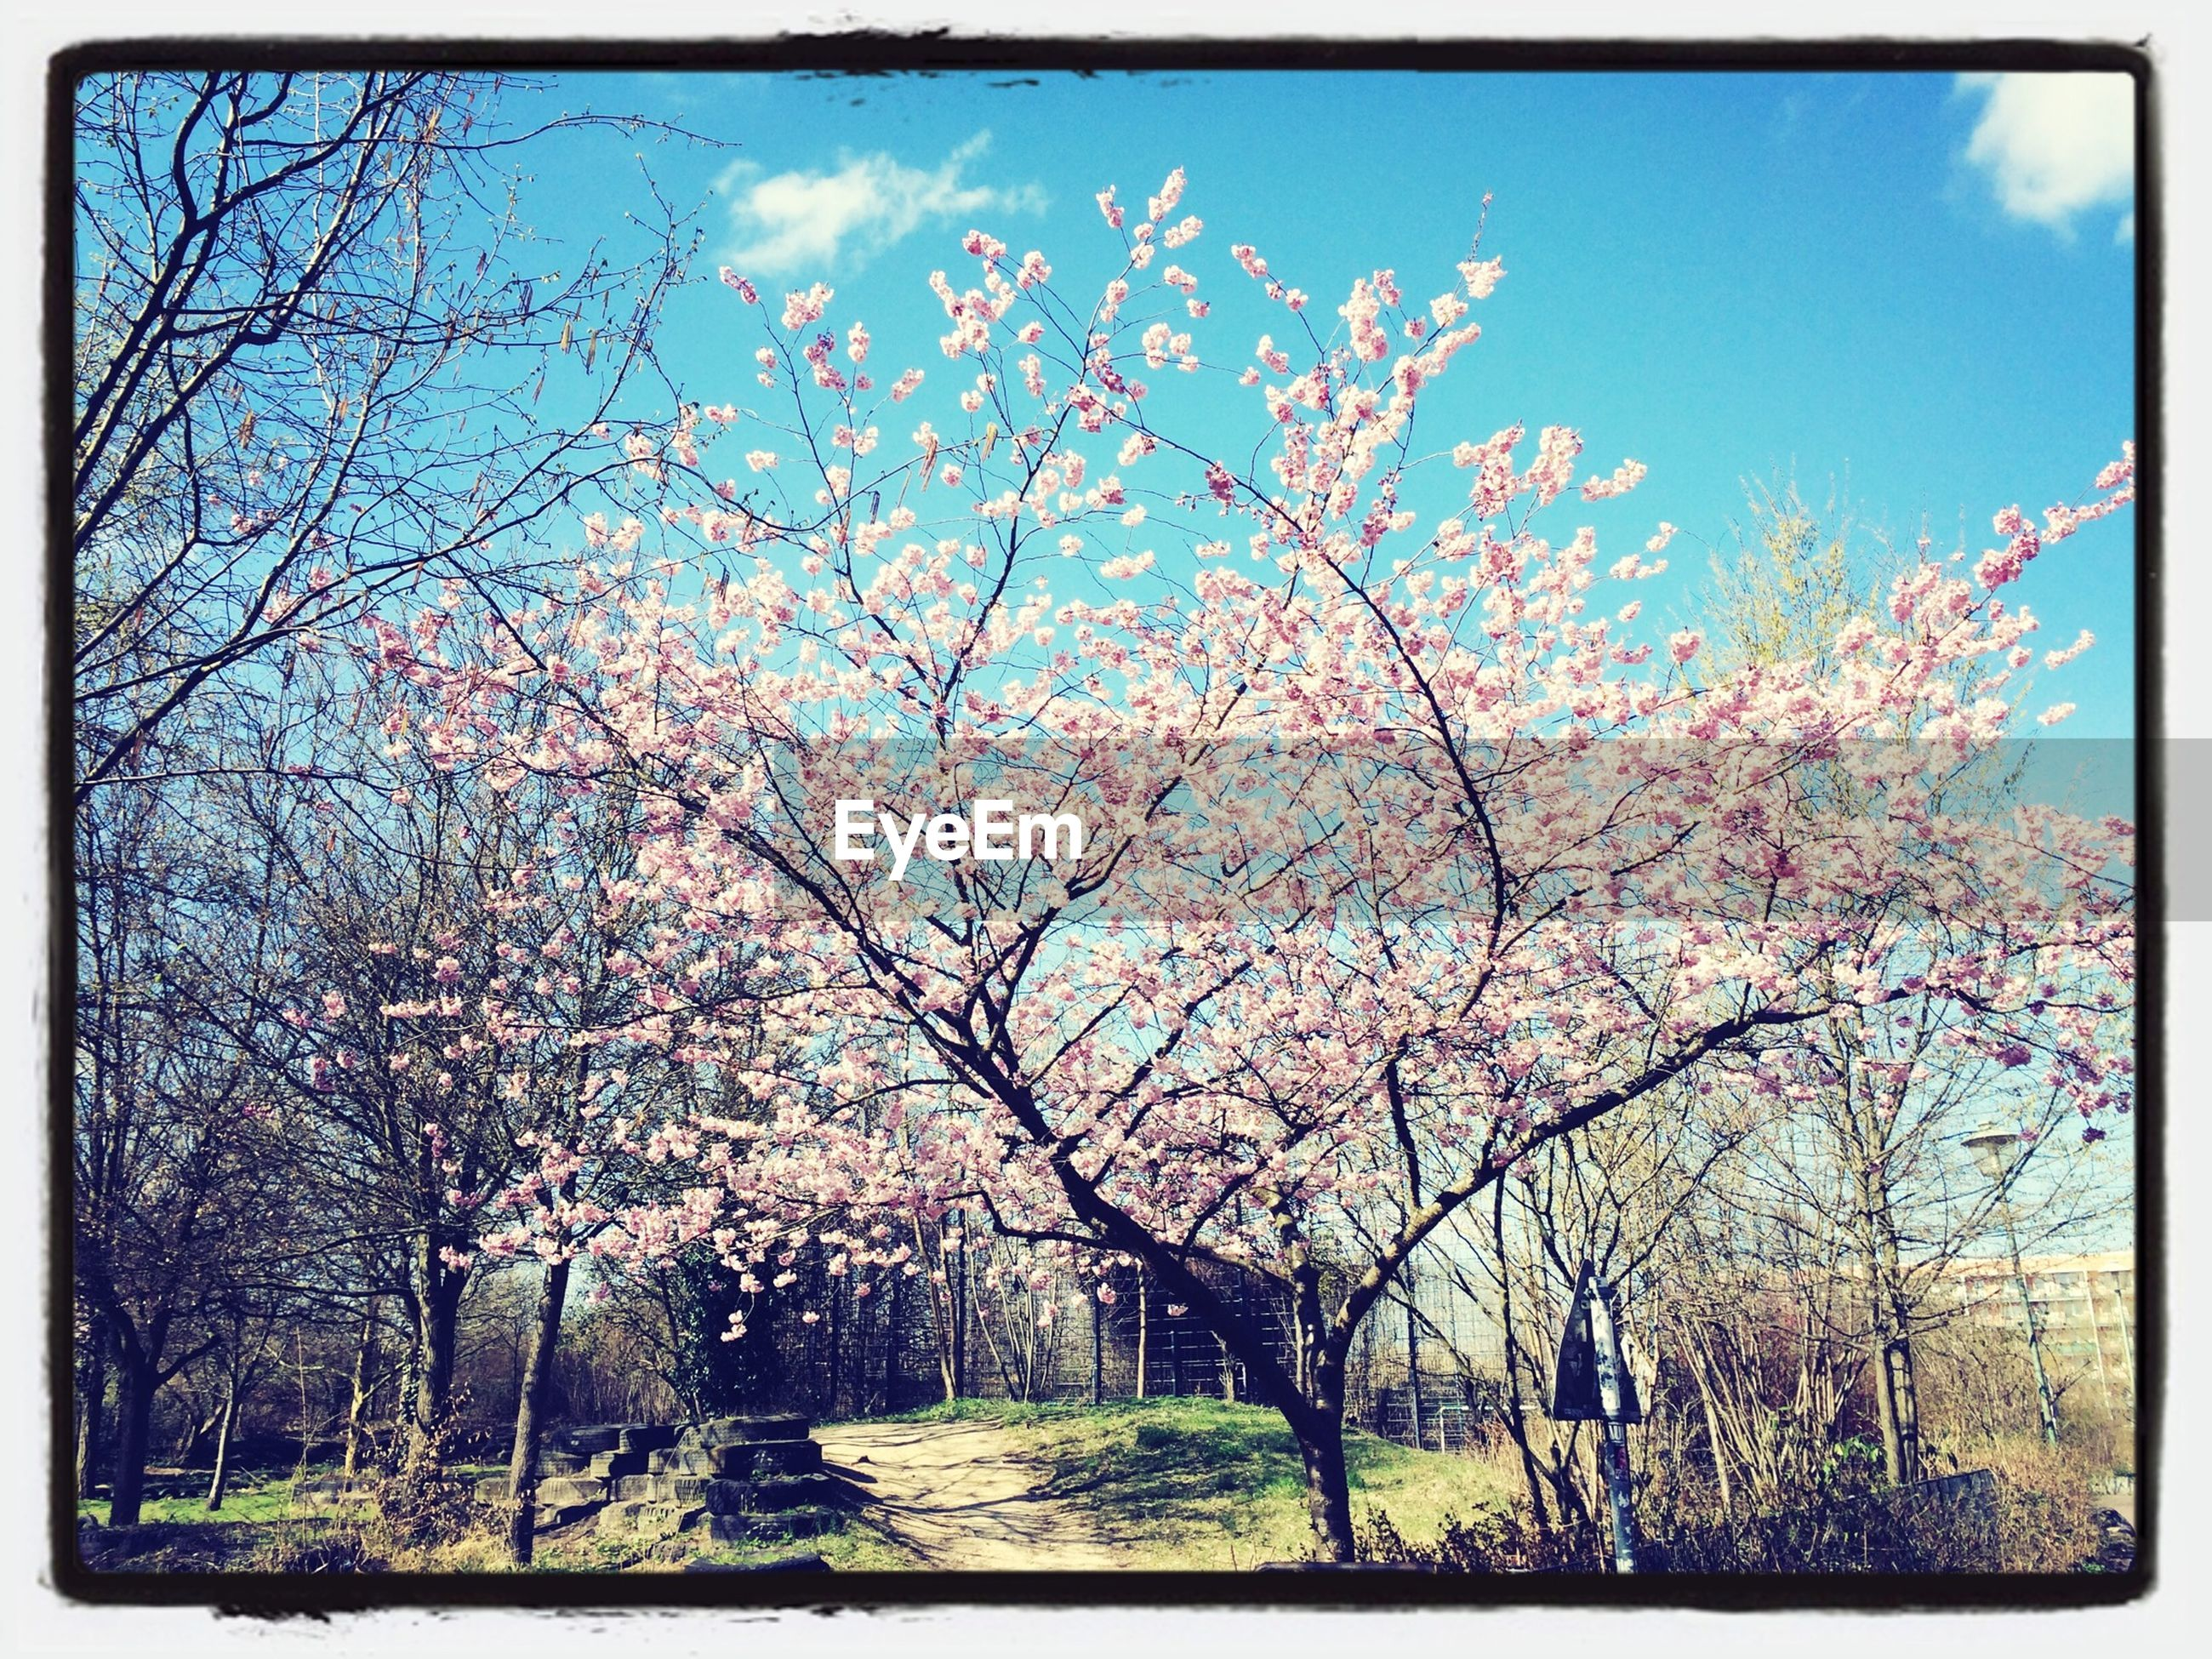 flower, transfer print, tree, growth, auto post production filter, sky, beauty in nature, branch, freshness, nature, blossom, fragility, low angle view, blooming, cherry blossom, in bloom, springtime, park - man made space, day, outdoors